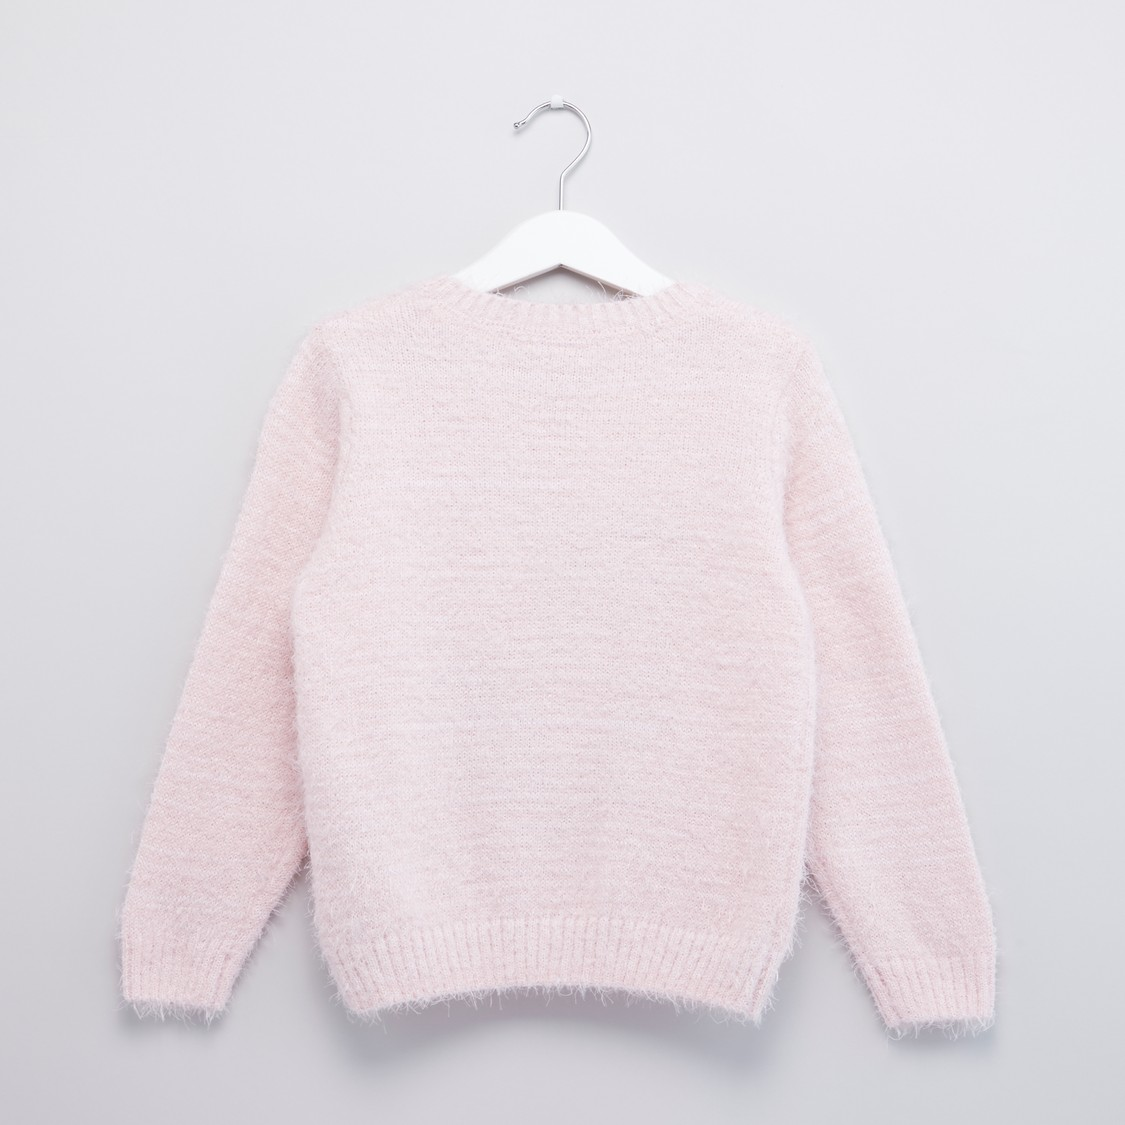 Sequin Detail Sweater with Long Sleeves